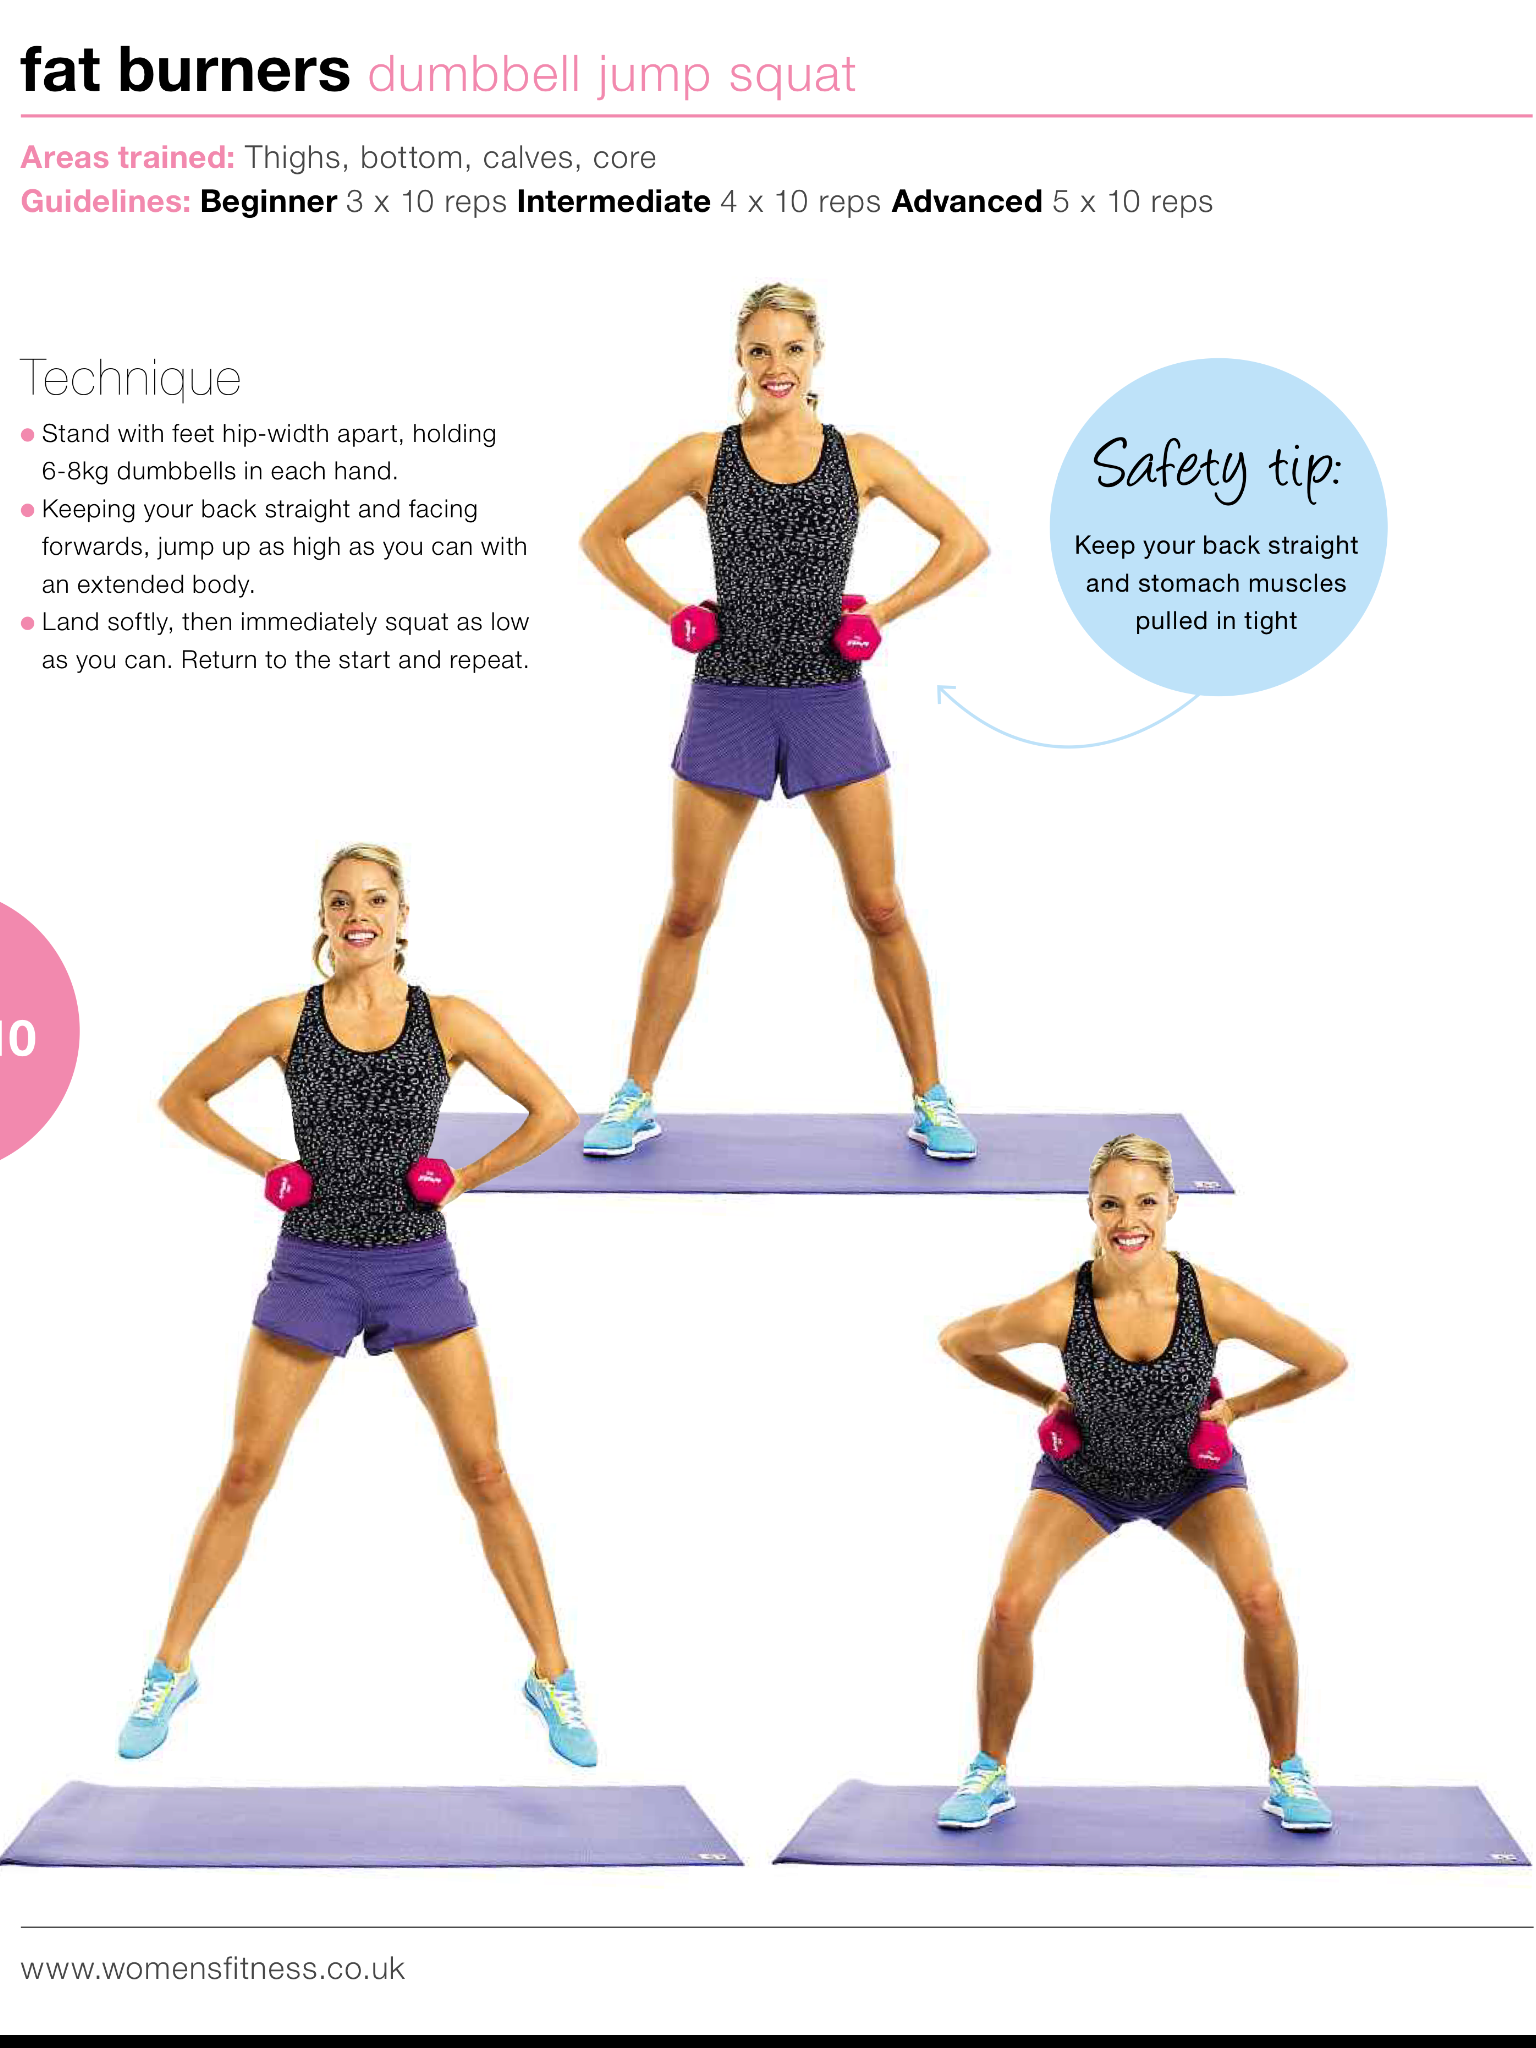 Pin by Jia Jia on Fitness & workouts Jump squats